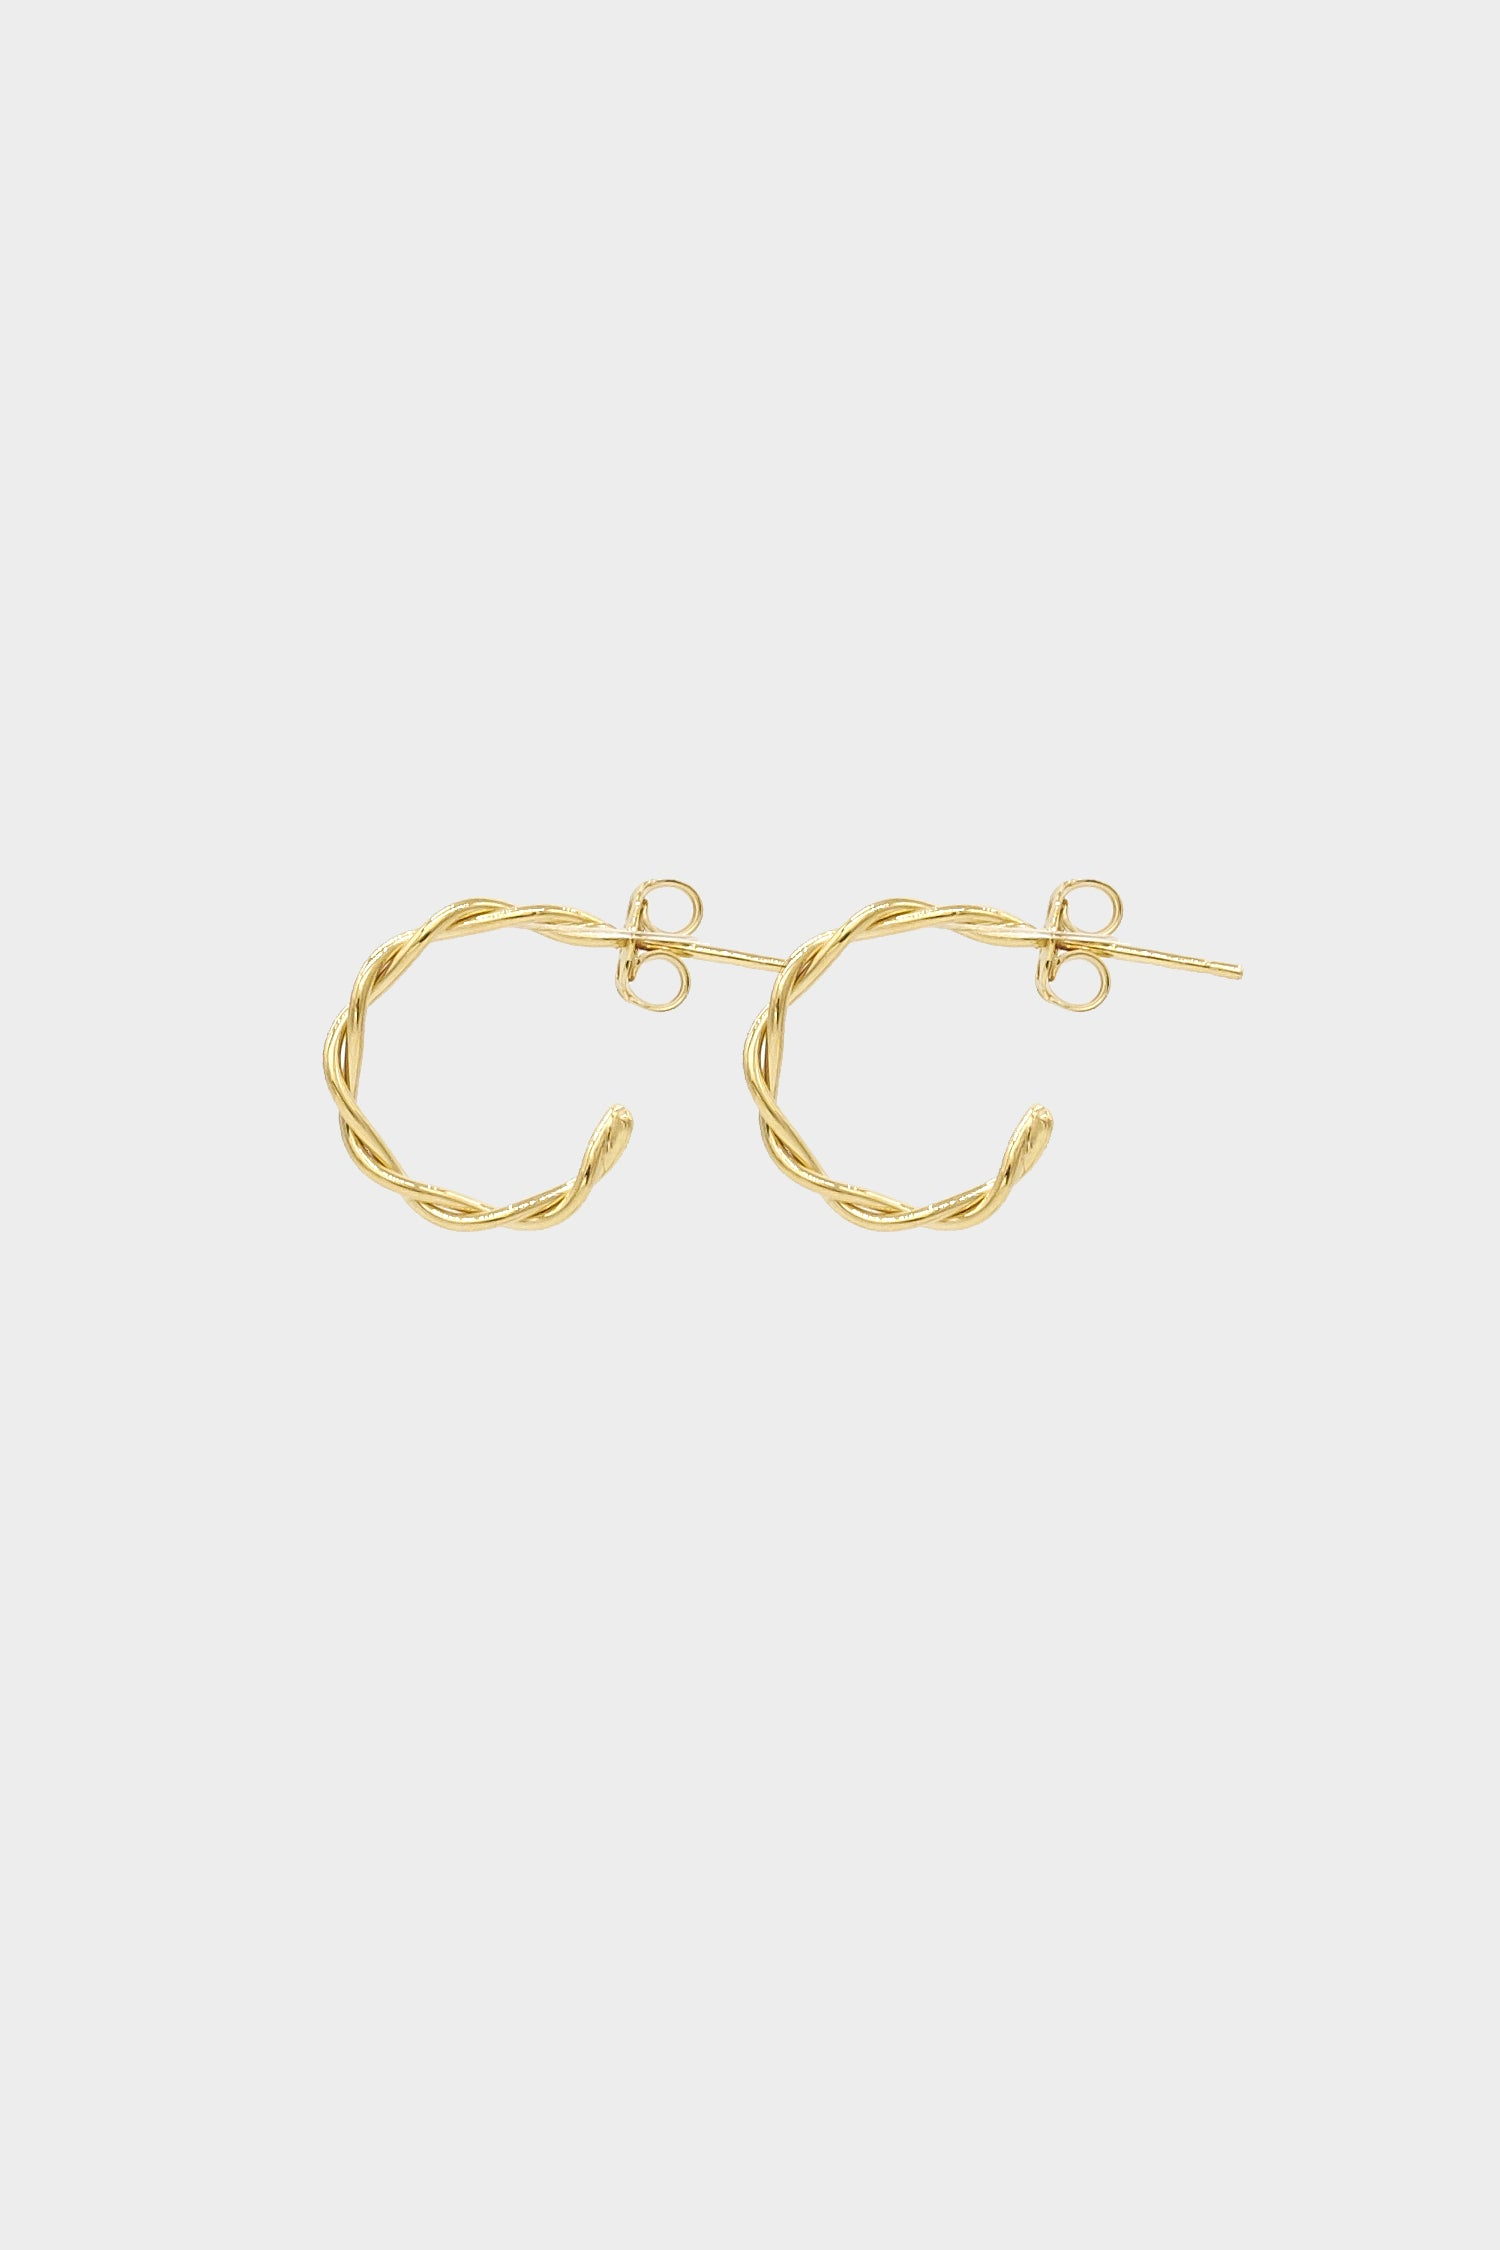 Helix Earrings Small | 9K Yellow Gold